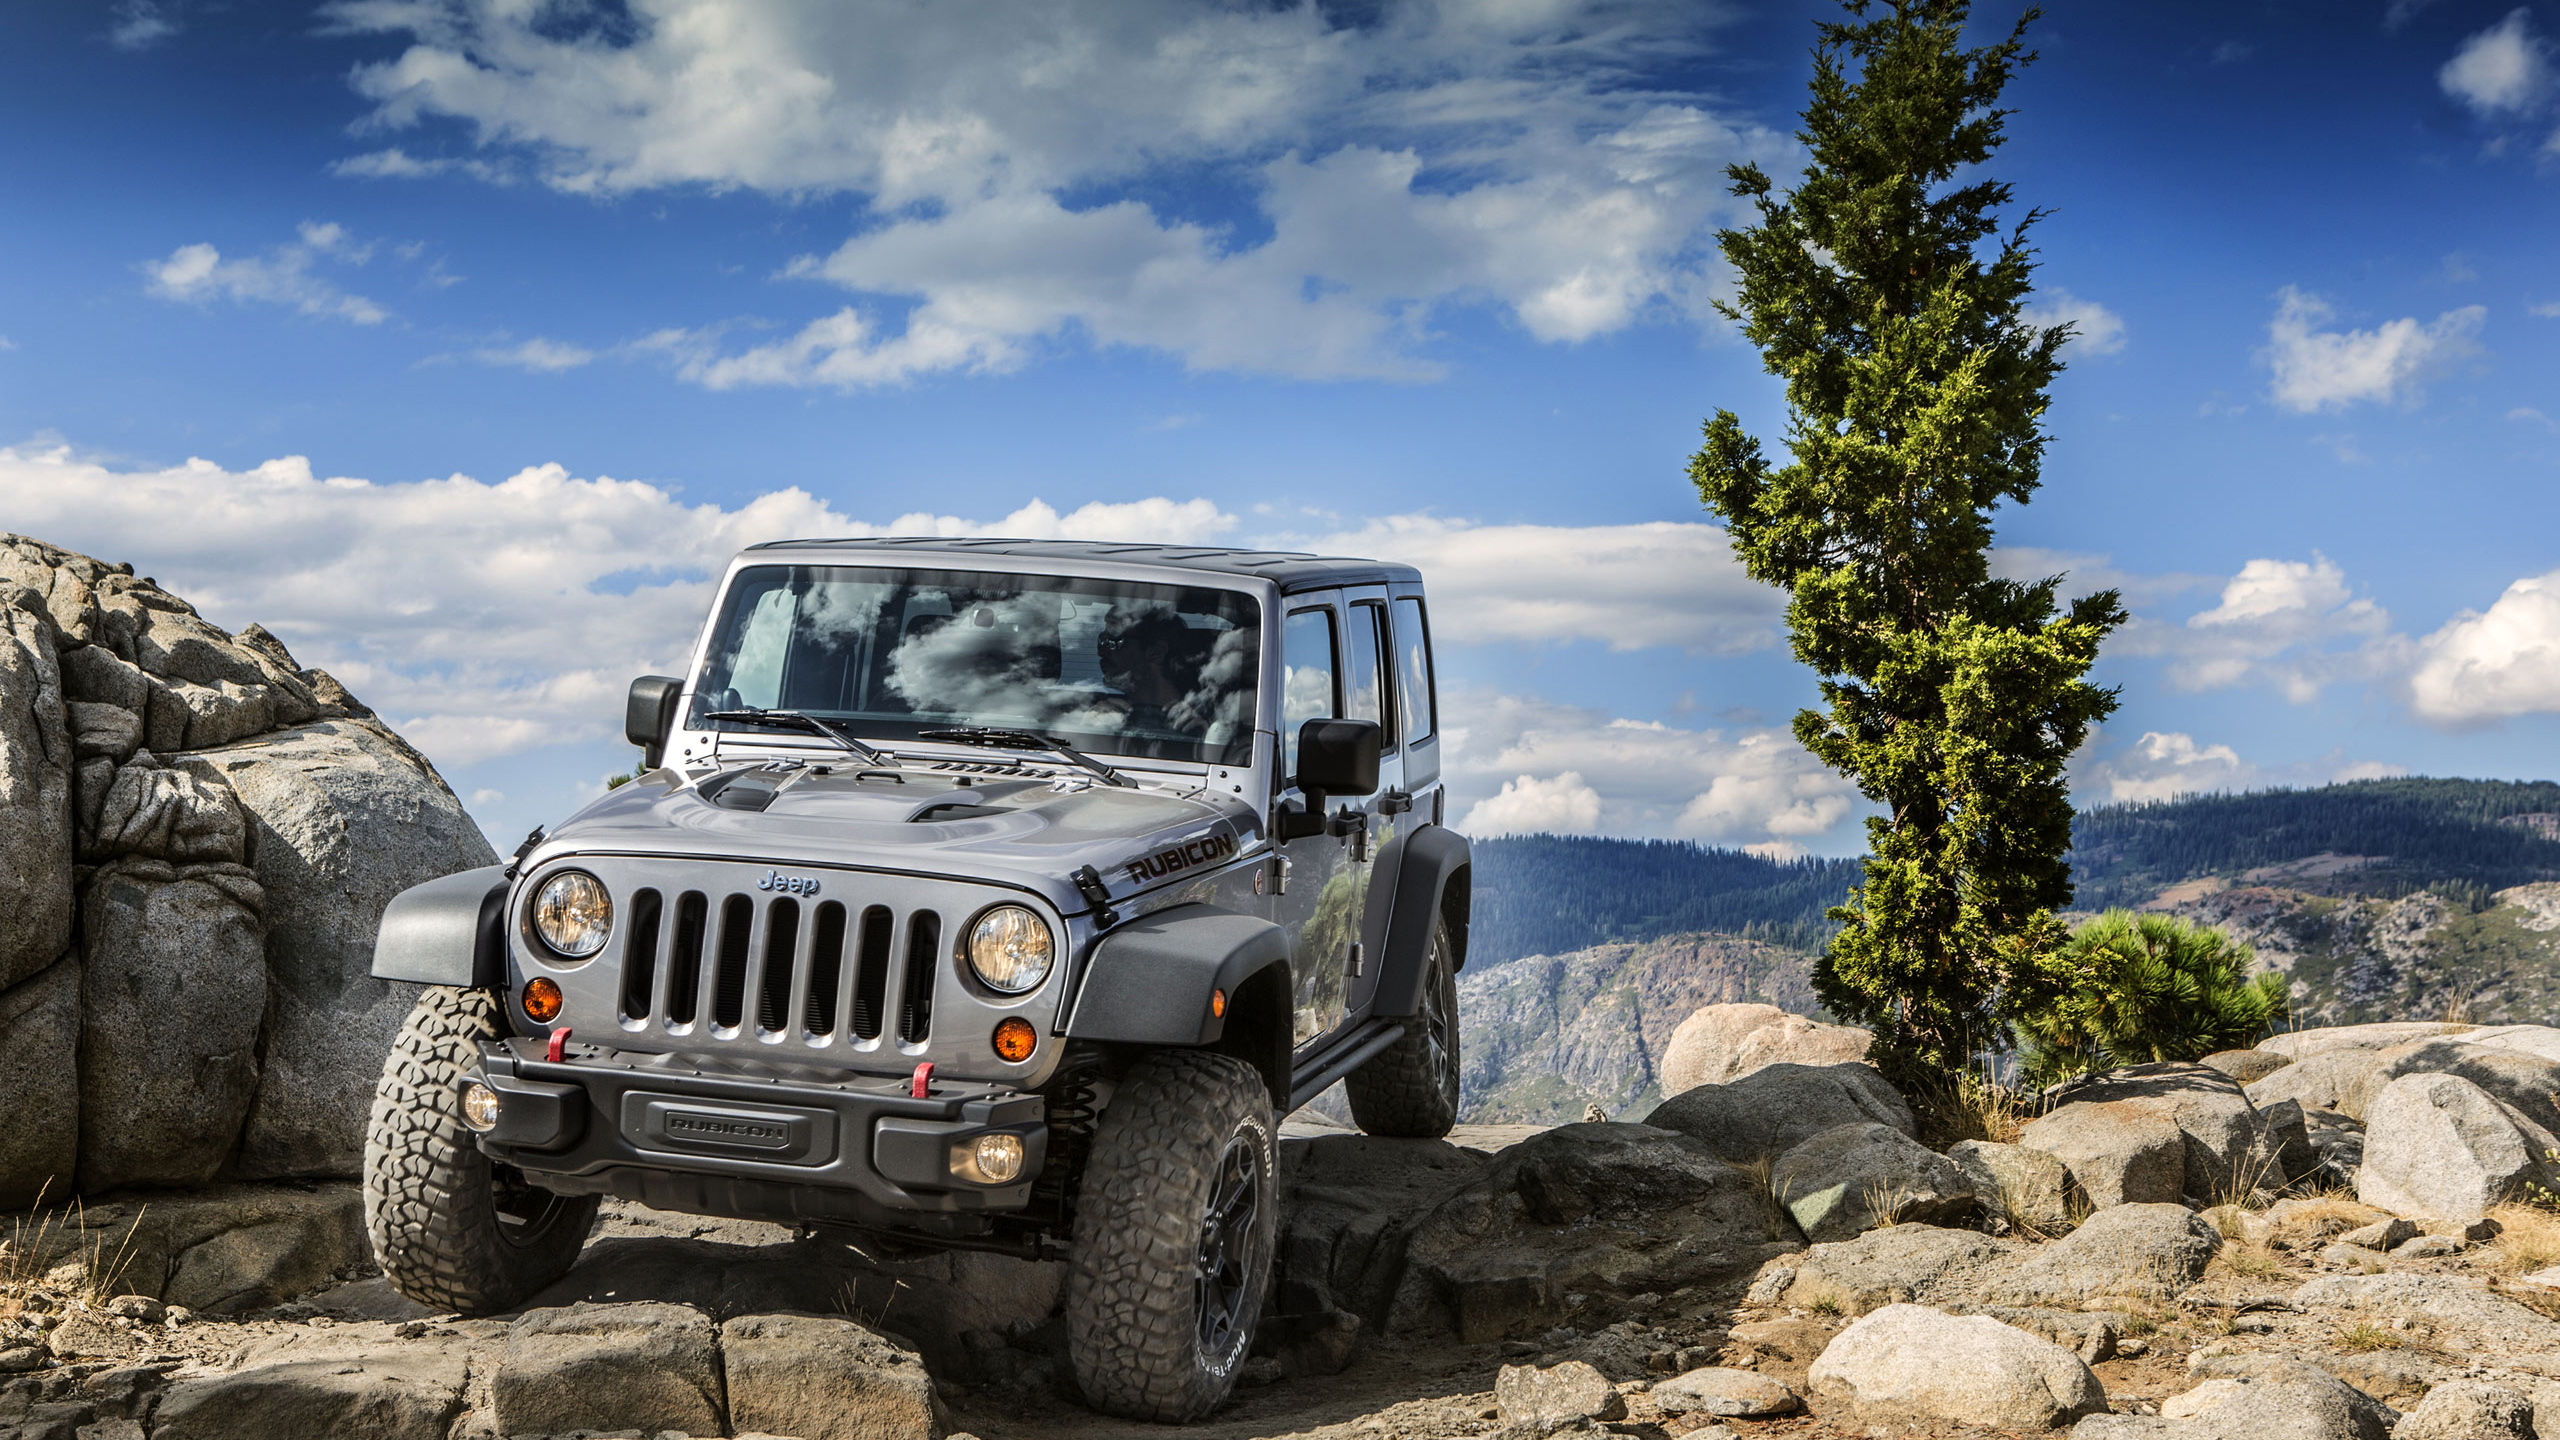 Jeep Car Images Hd: 2013 Jeep Wrangler Rubicon 10th Anniversary Edition